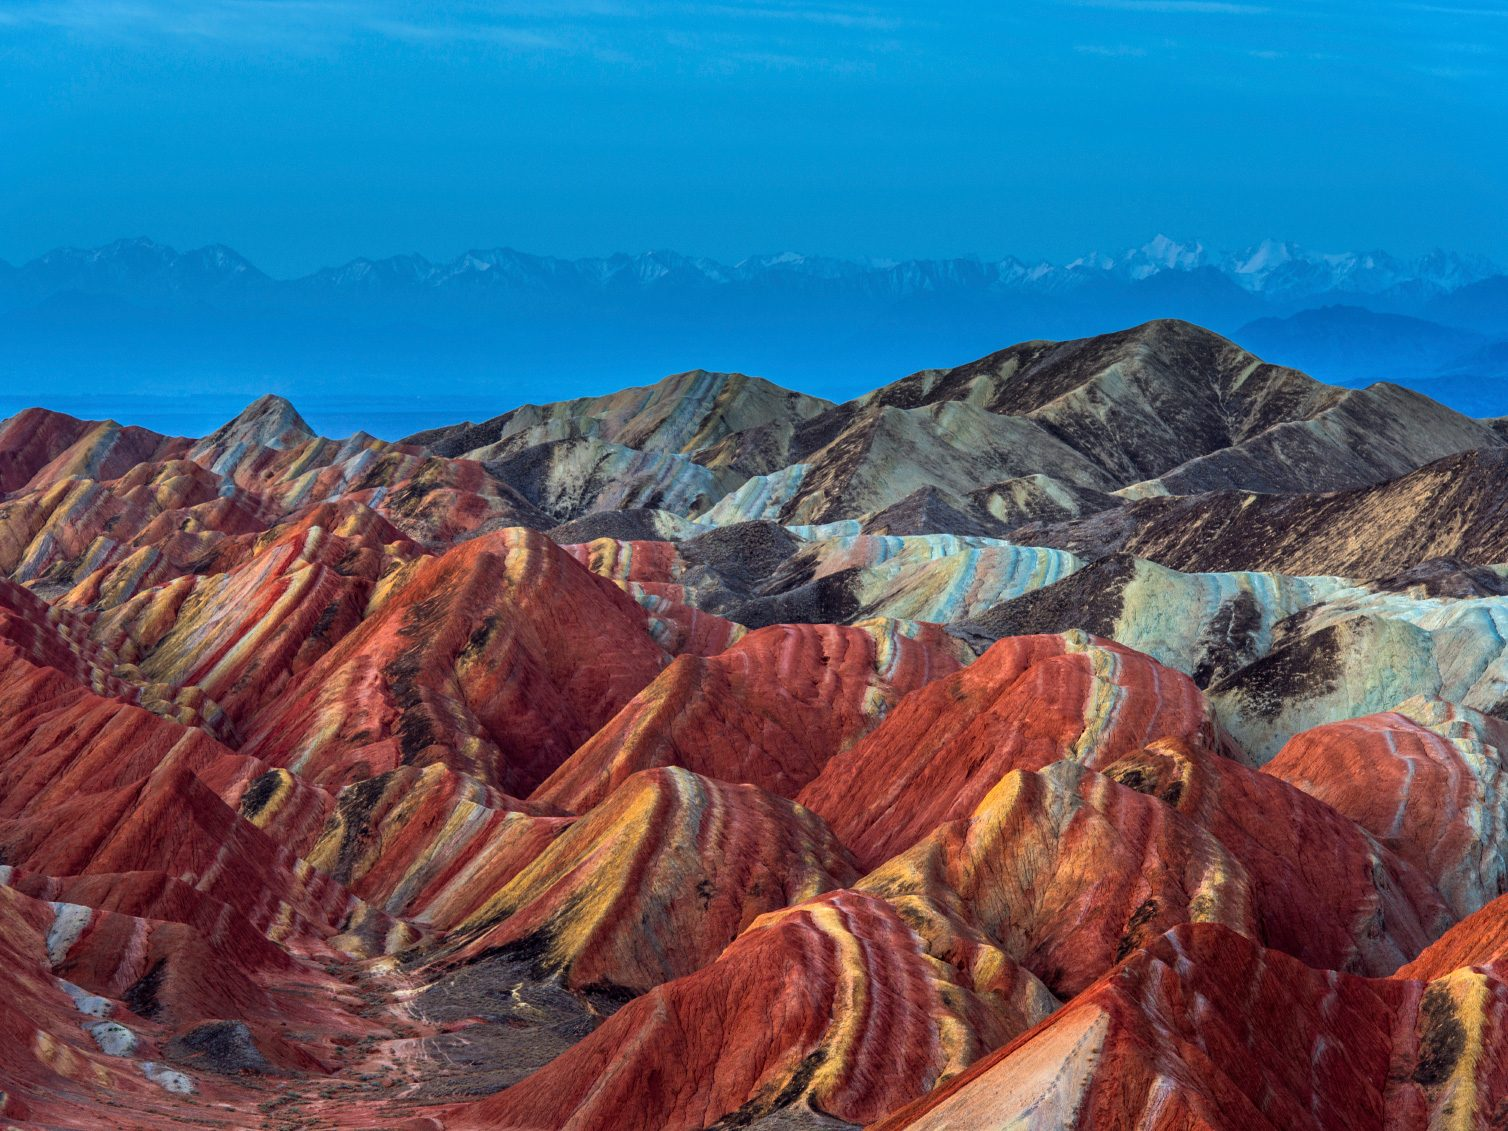 Natural Wonder of China: Danxia landform